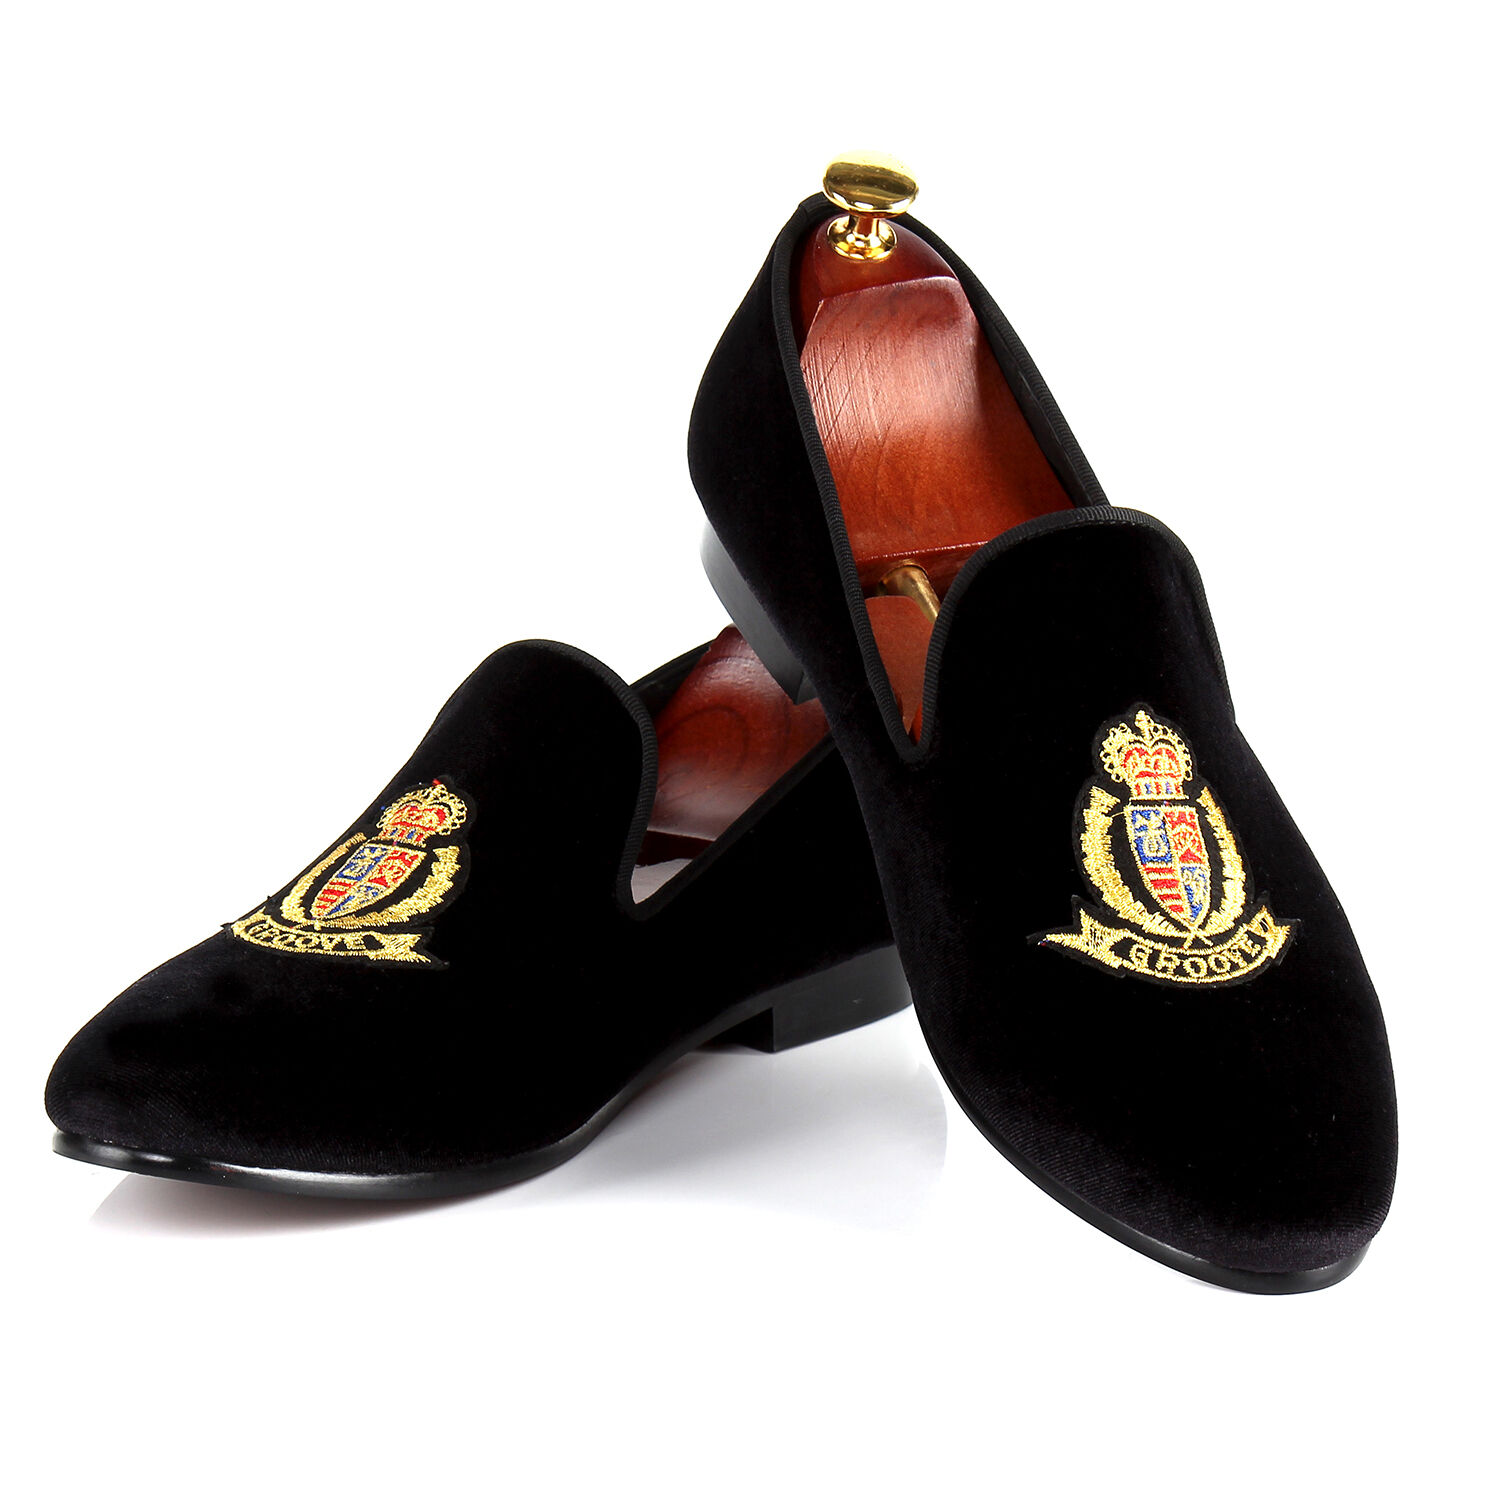 Harpelunde Velvet Men Dress Shoes Black Velvet Harpelunde Slippers Badge Loafers Size 6-14 c7e007